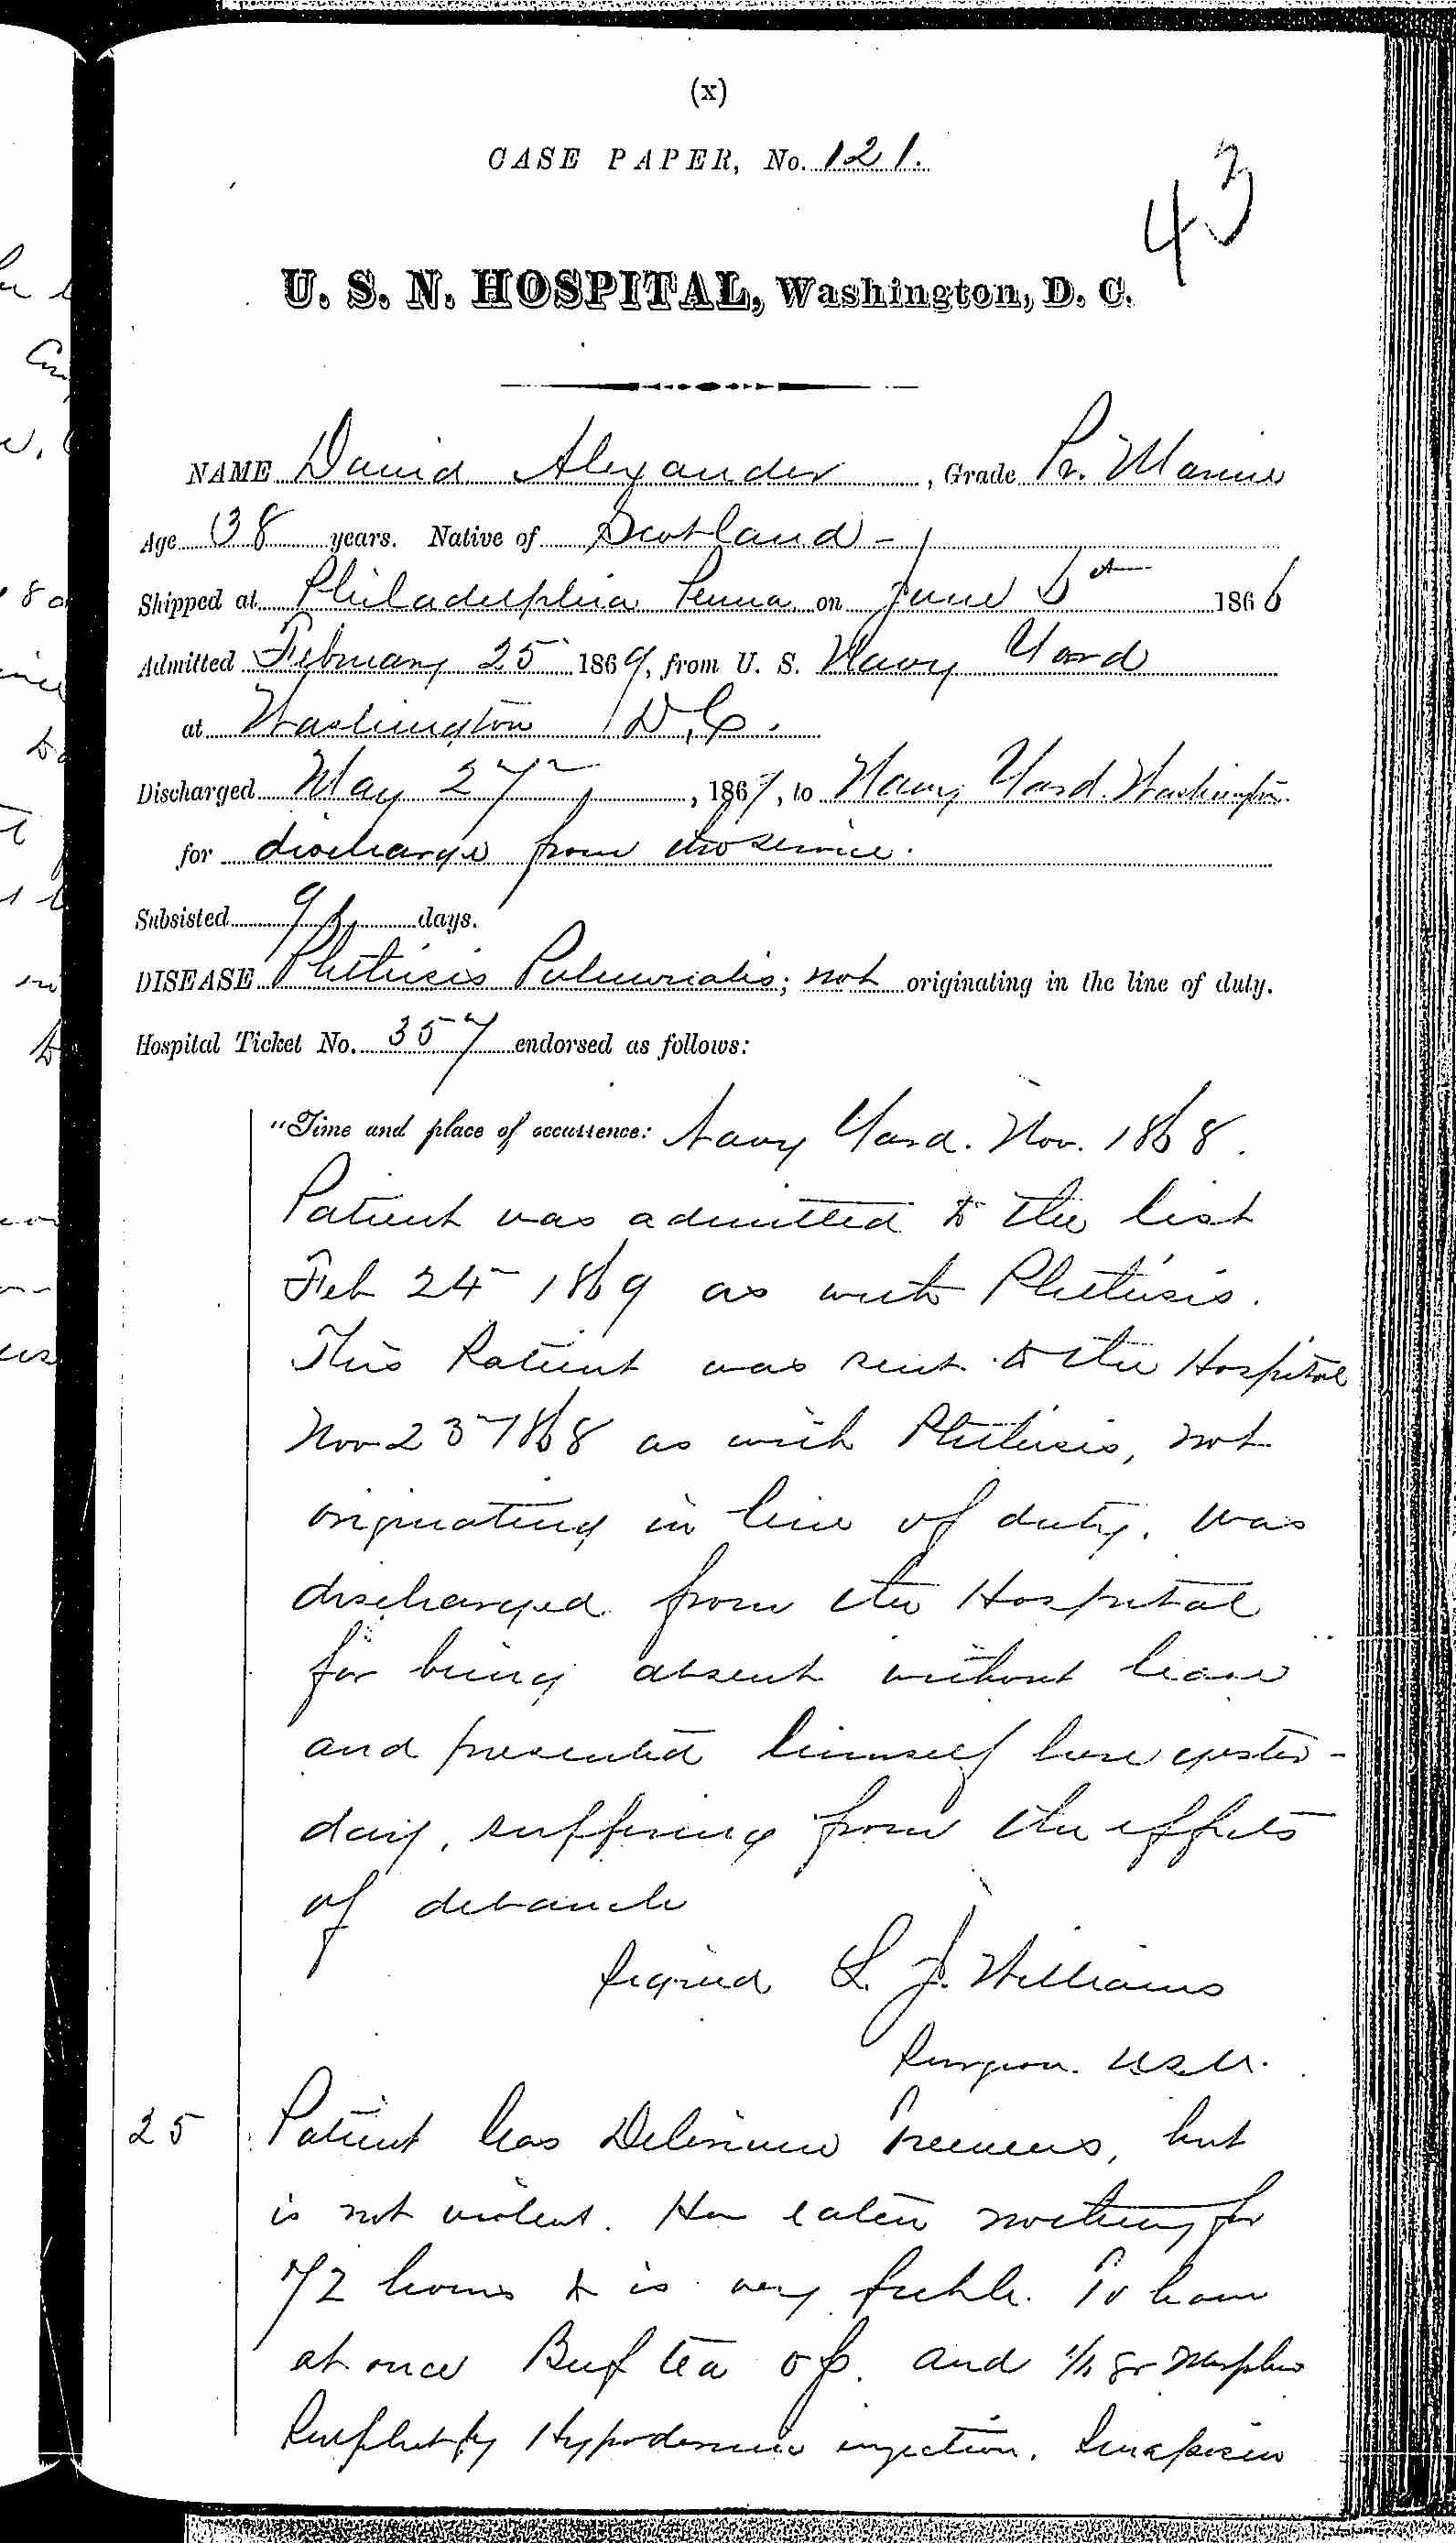 Entry for David Alexander (second admission page 1 of 3) in the log Hospital Tickets and Case Papers - Naval Hospital - Washington, D.C. - 1868-69